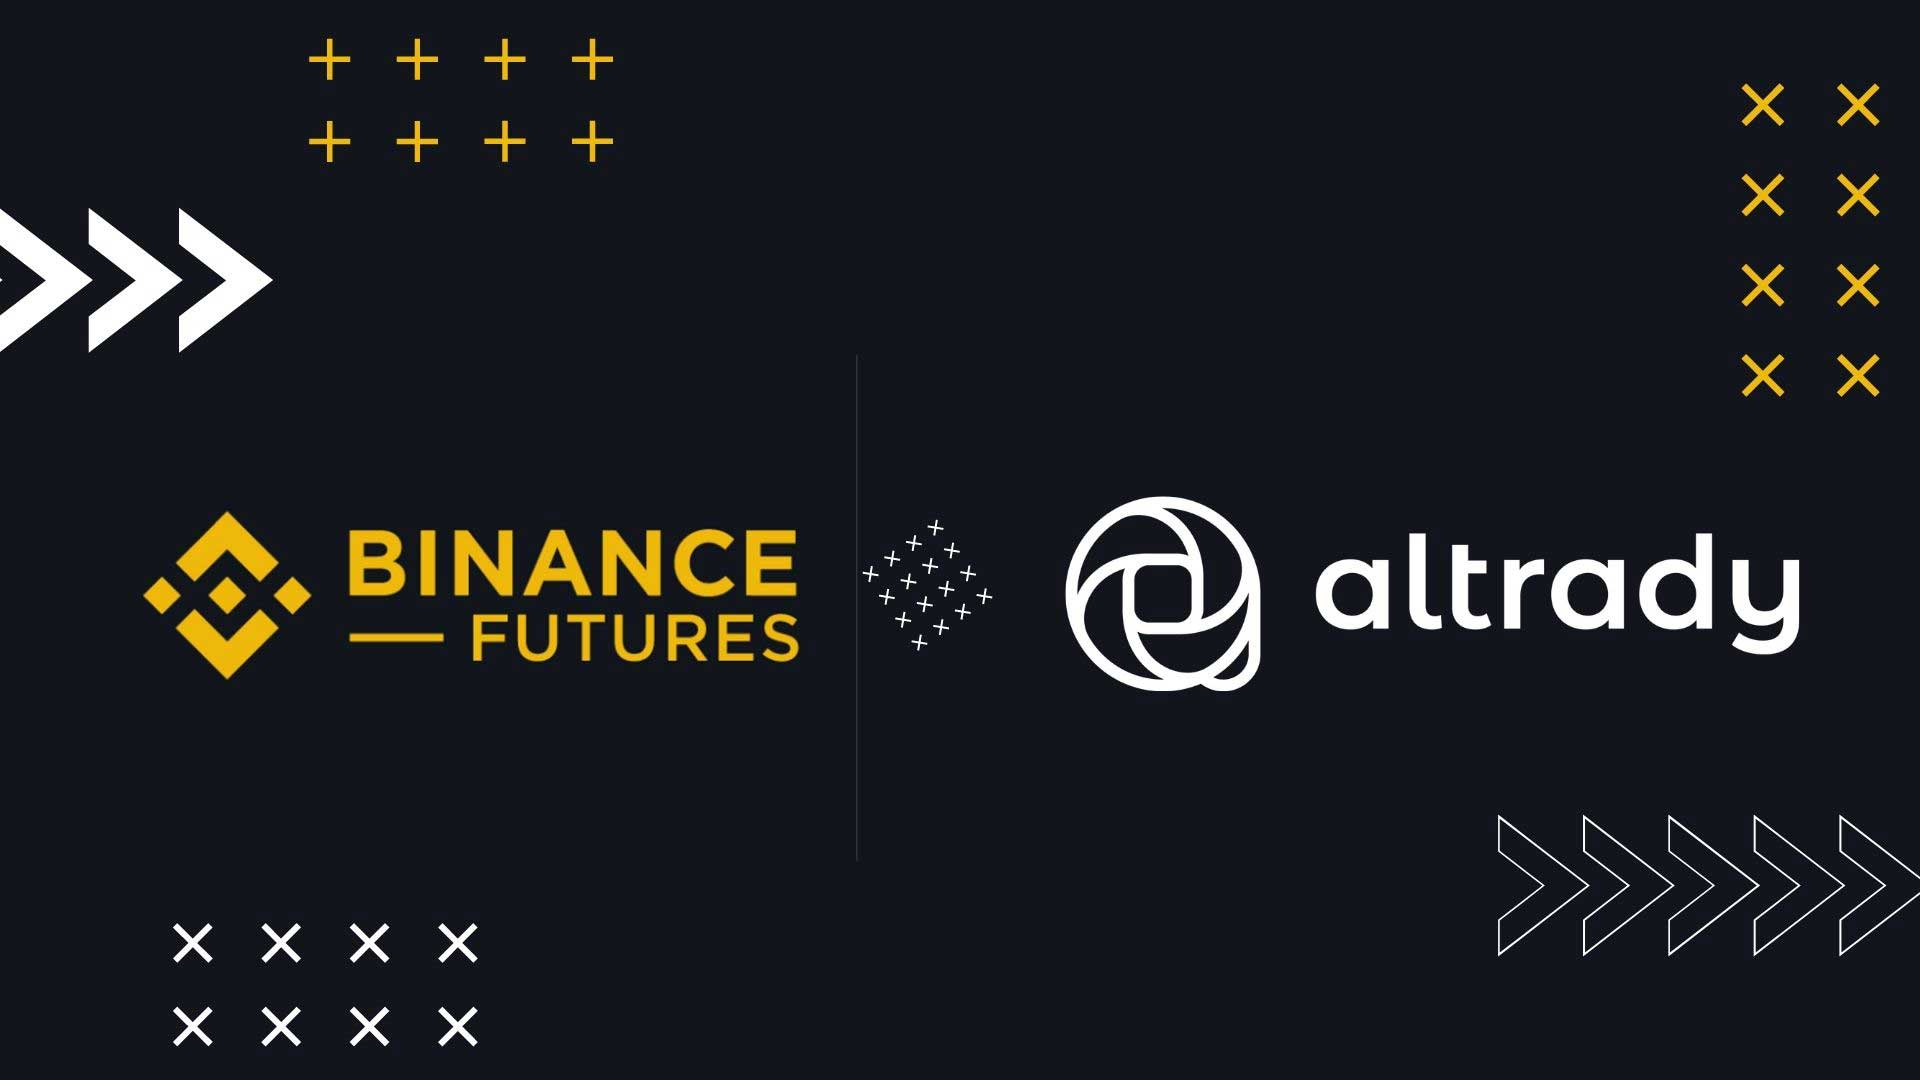 binance futures trading platform